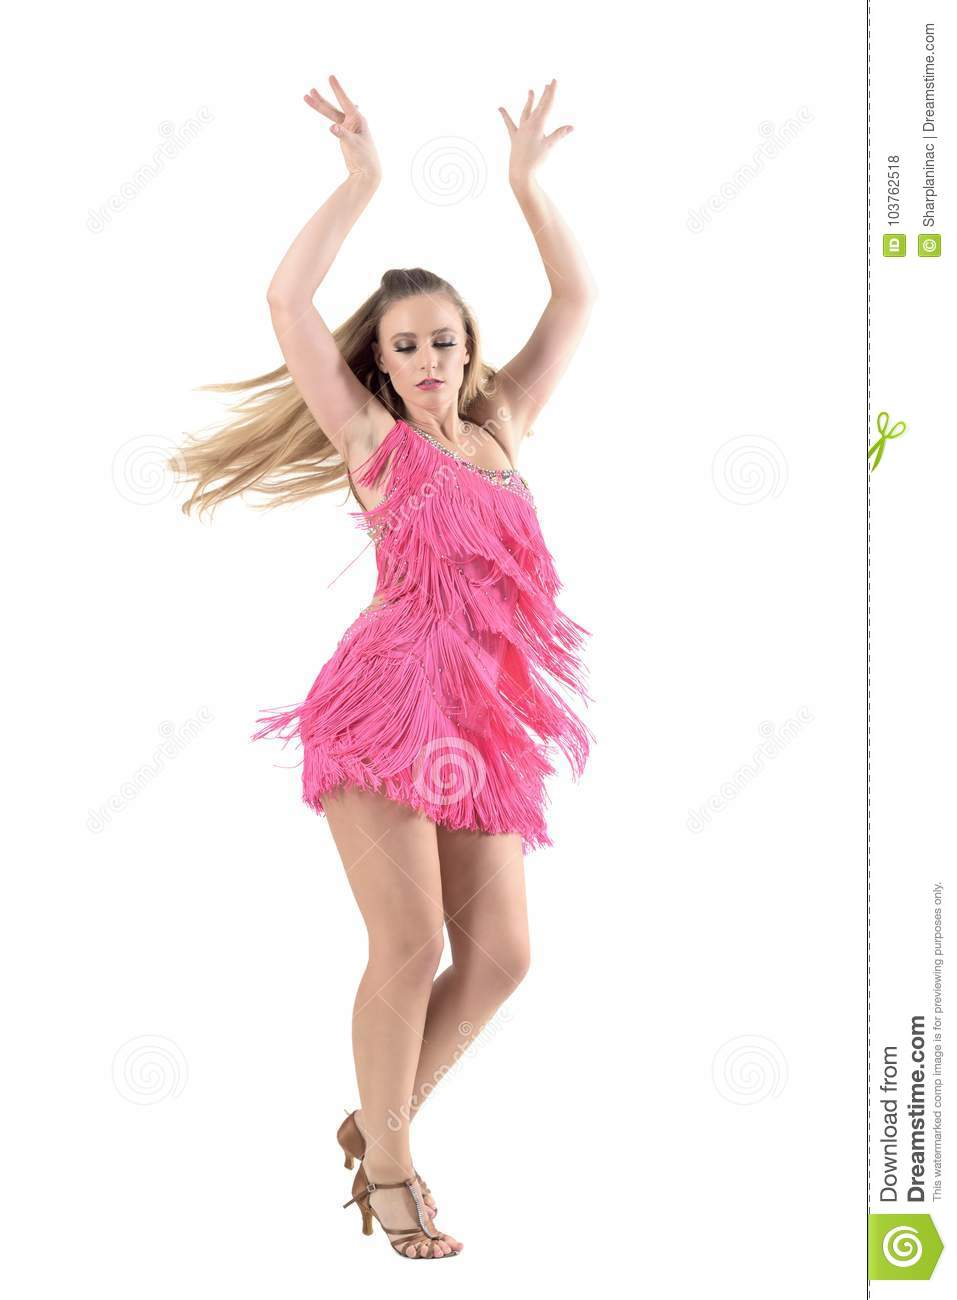 835151516 Blonde Woman Dancing Latino Dances With Arms Raised Up. Stock Photo ...